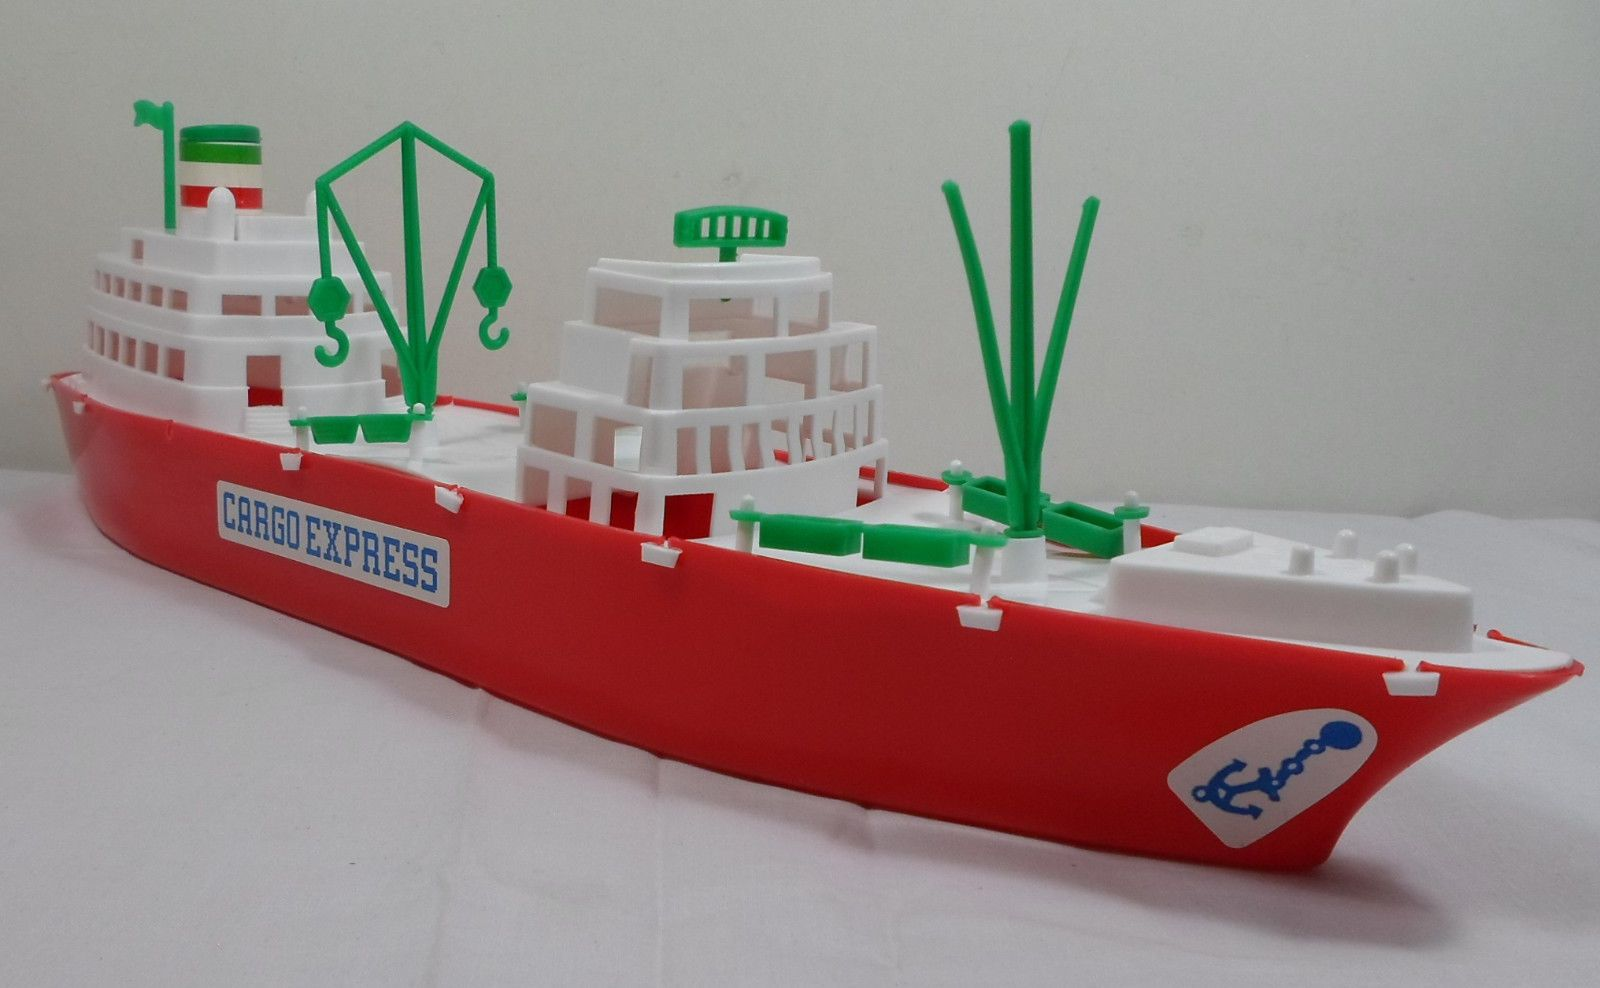 Ropaplast Vtg Italy 70 S 80 S Plastic 17 Red Pacific Princess Ship Water Toy Ebay Water Toys Toys Vintage Toys